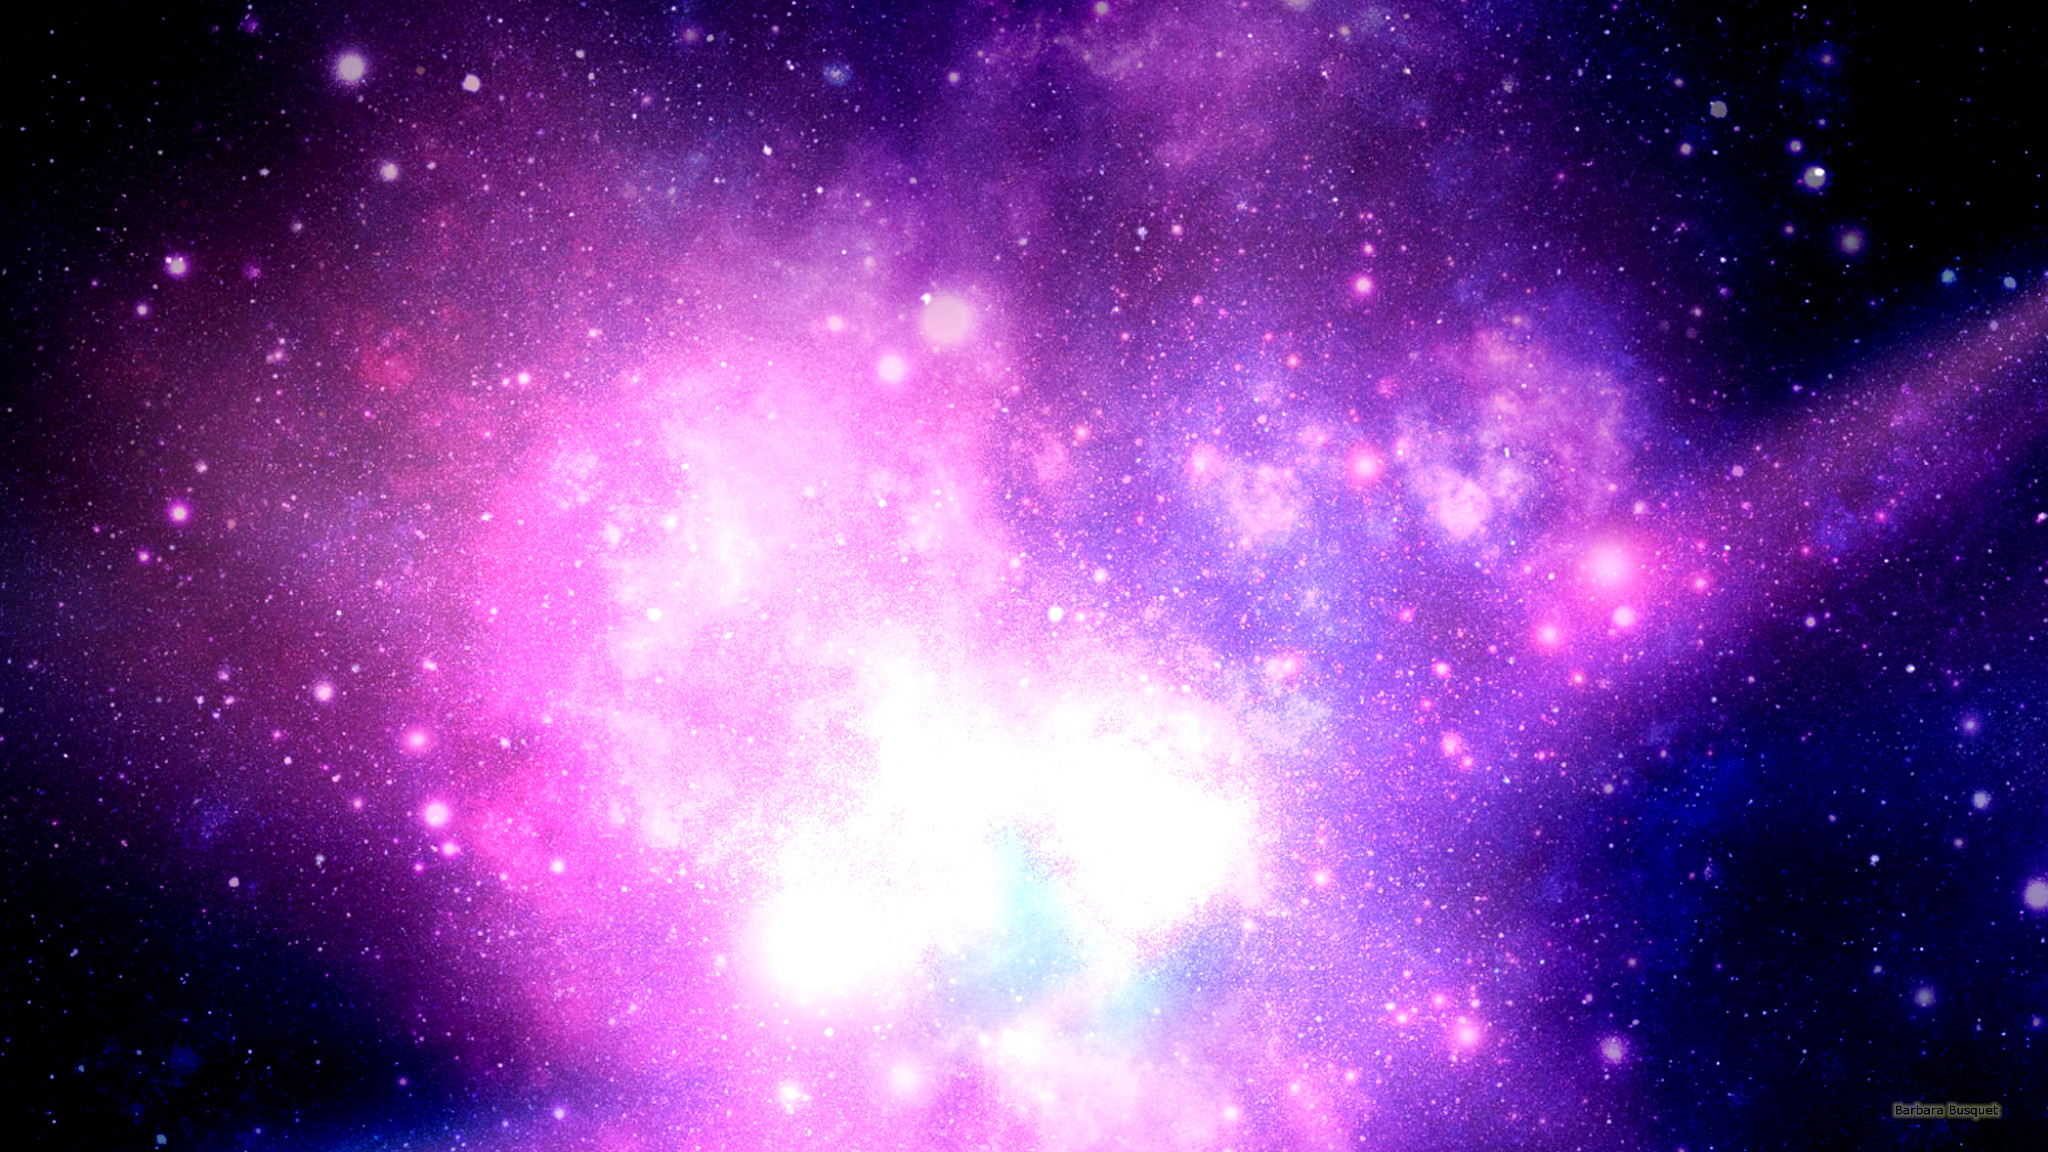 Space wallpaper purple nebula 1 1